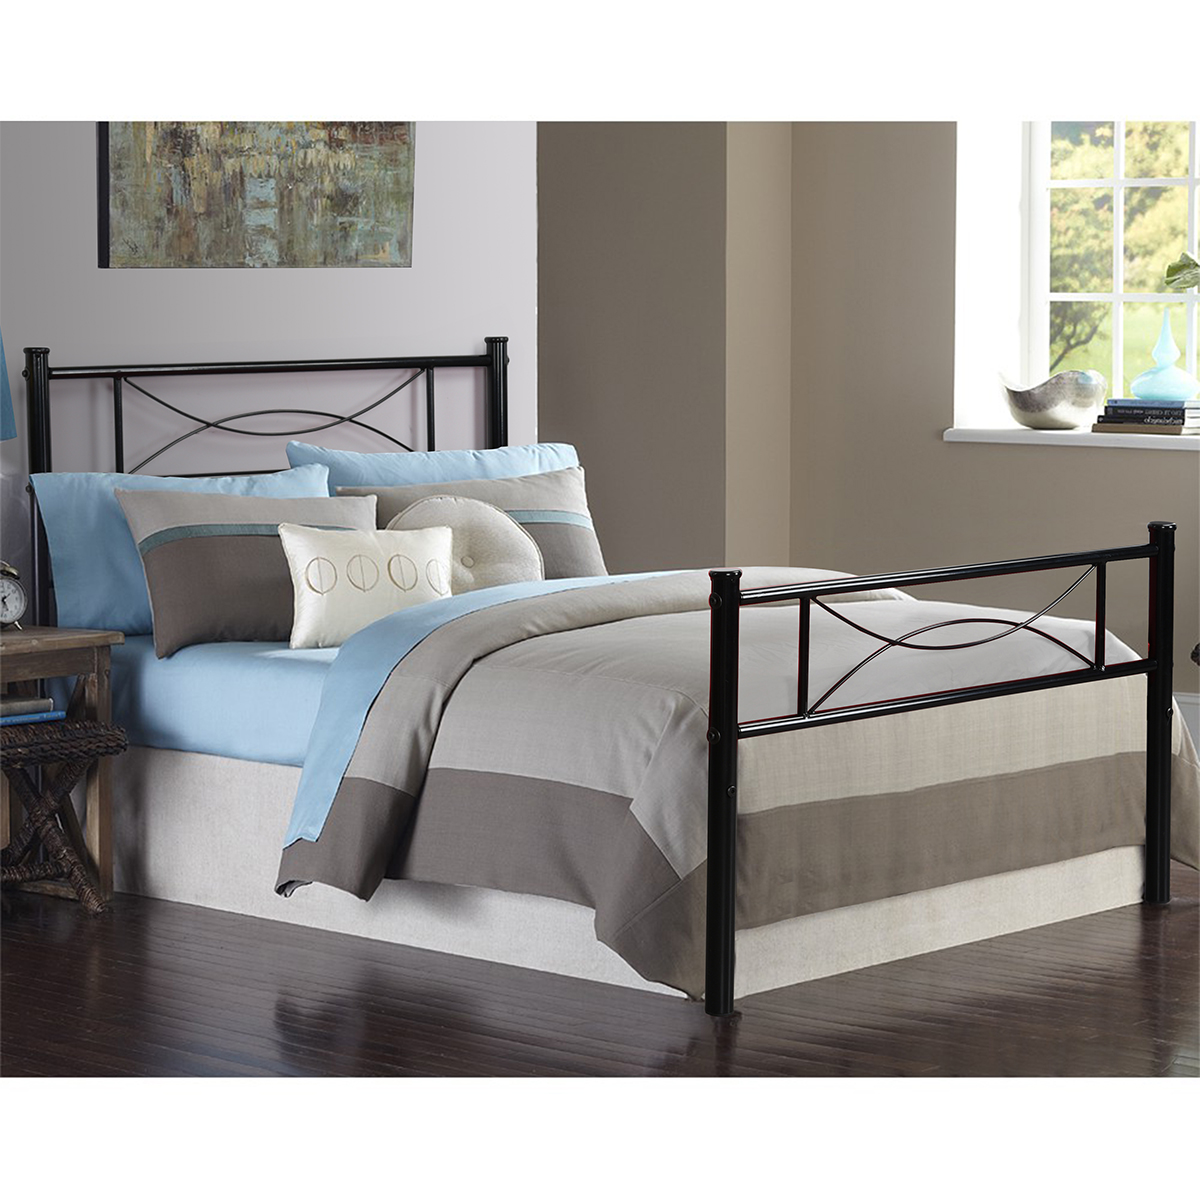 bedroom metal bed frame platform mattress foundation headboard twin full size. Black Bedroom Furniture Sets. Home Design Ideas